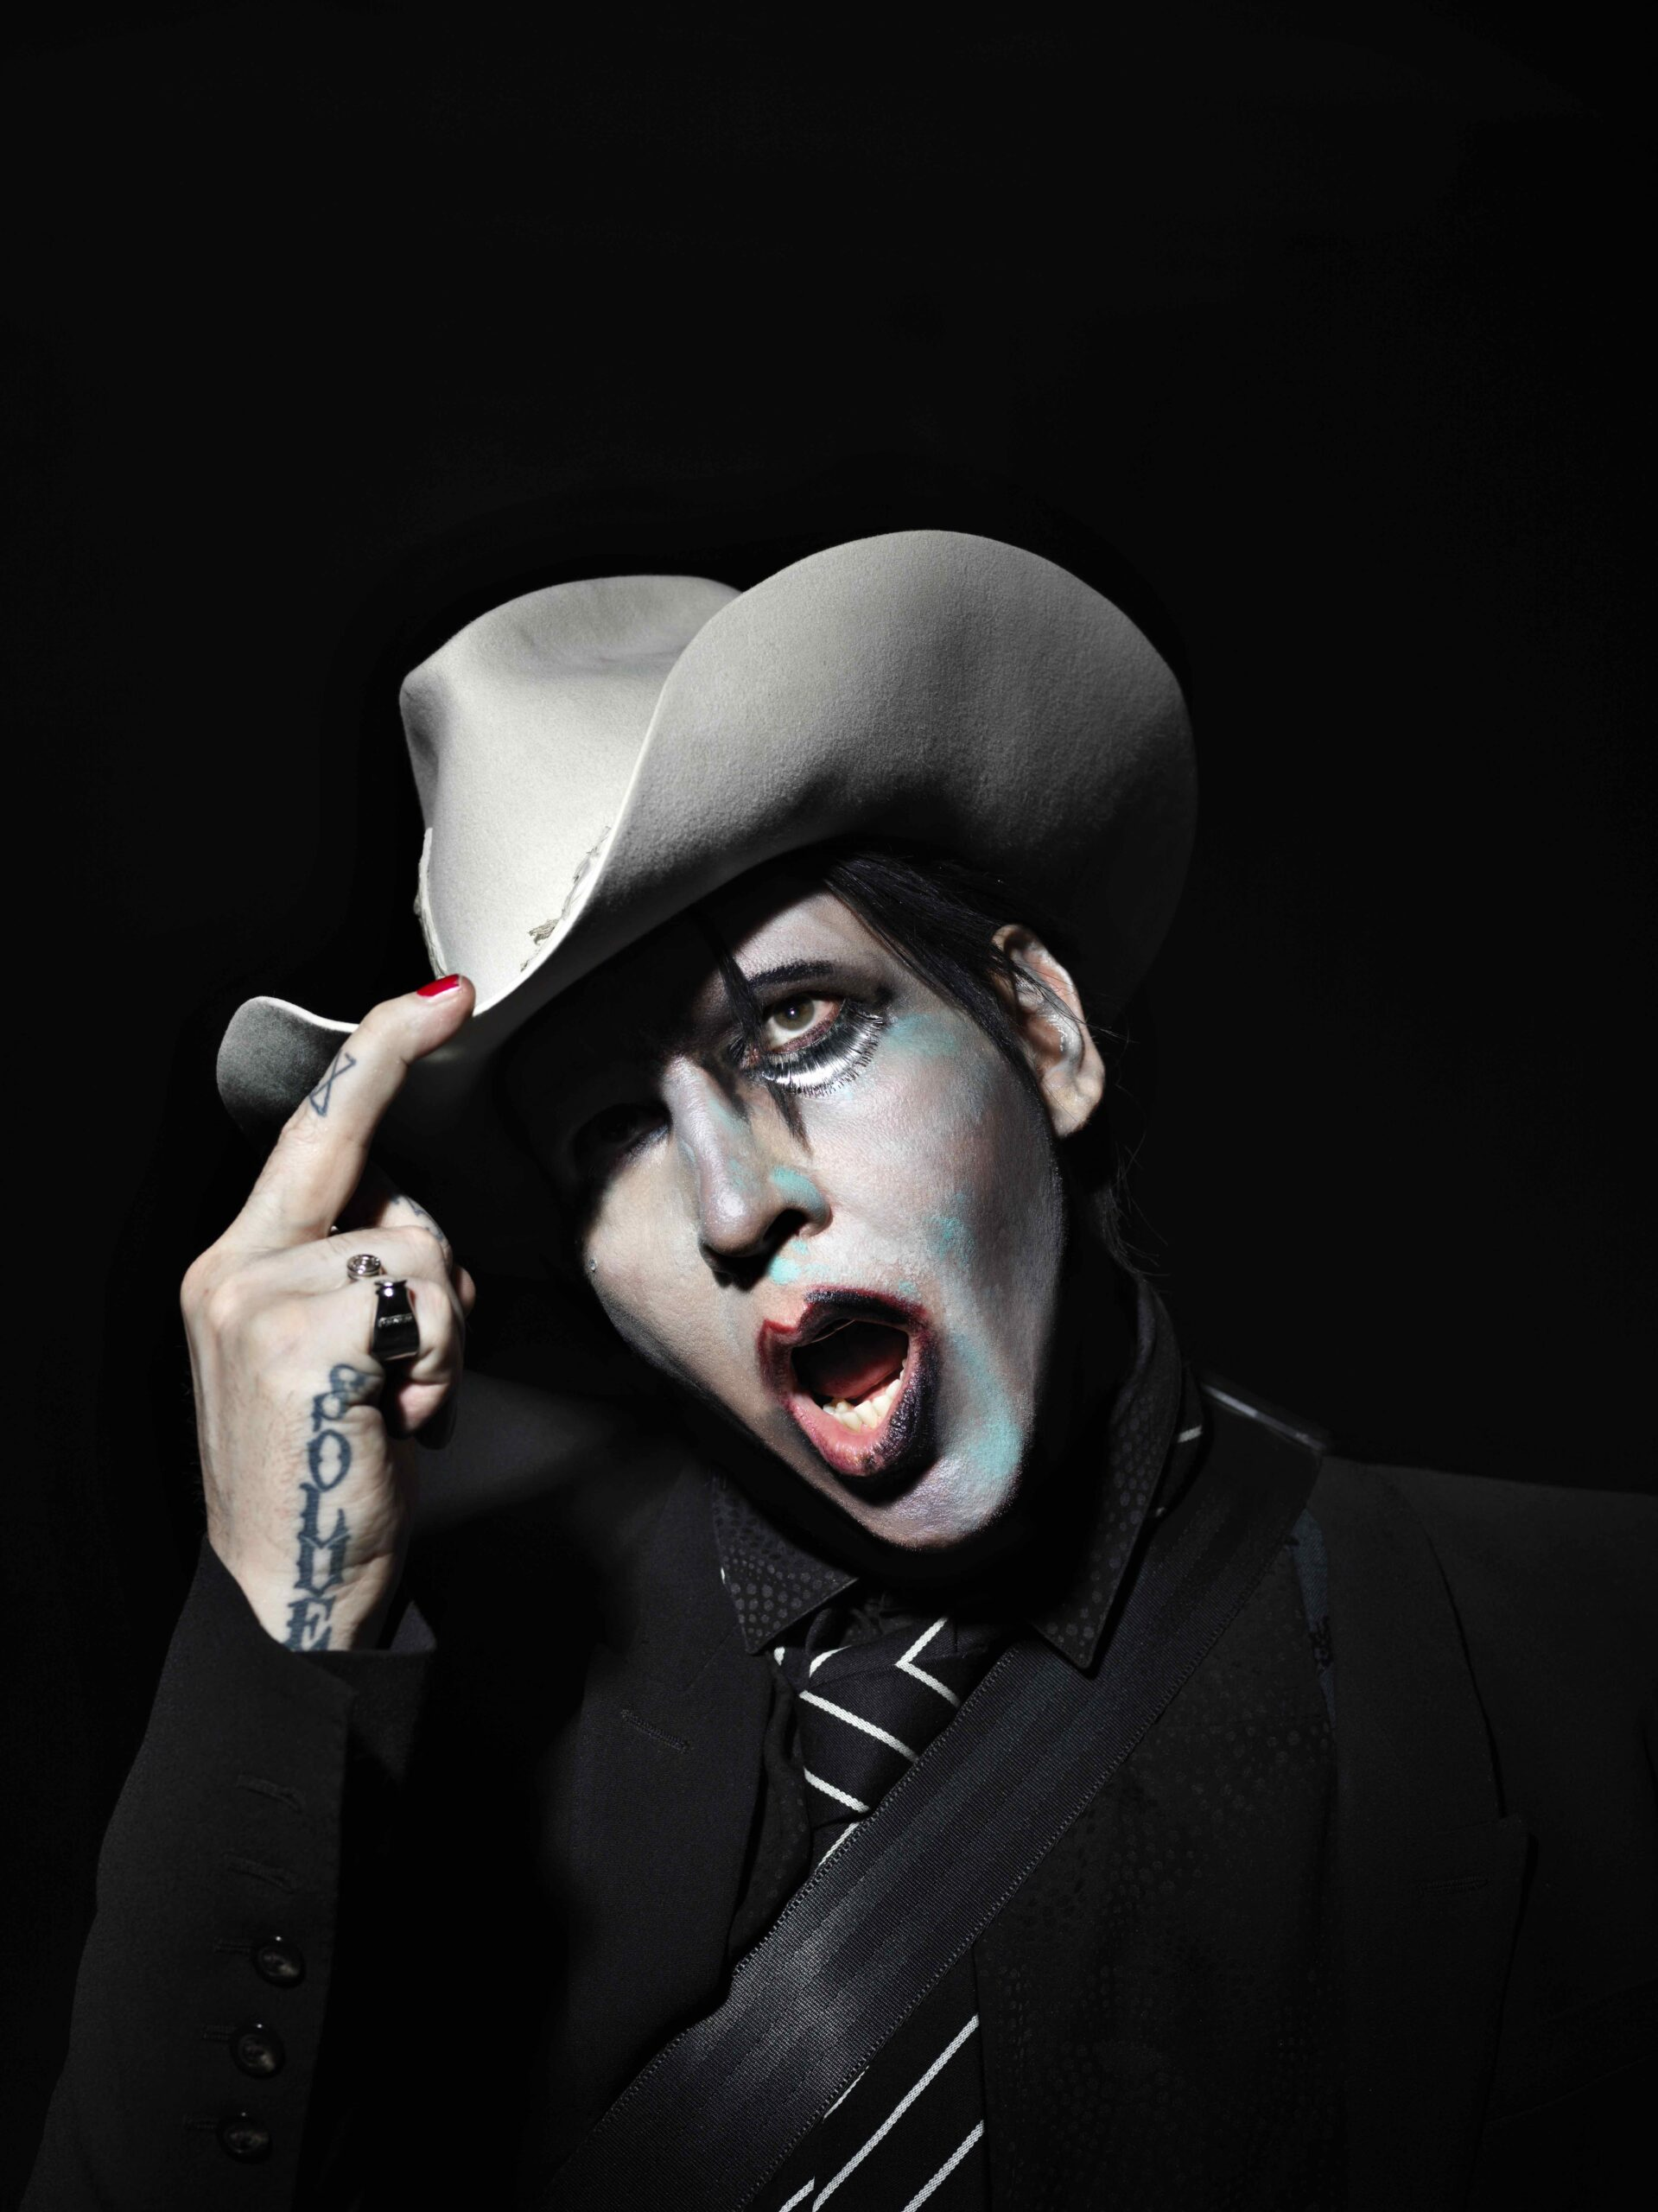 MARILYN MANSON  RETURNS WITH NEW ALBUM WE ARE CHAOS OUT SEPT 11 VIA LOMA VISTA   FIRST SINGLE, WE ARE CHAOS OUT NOW